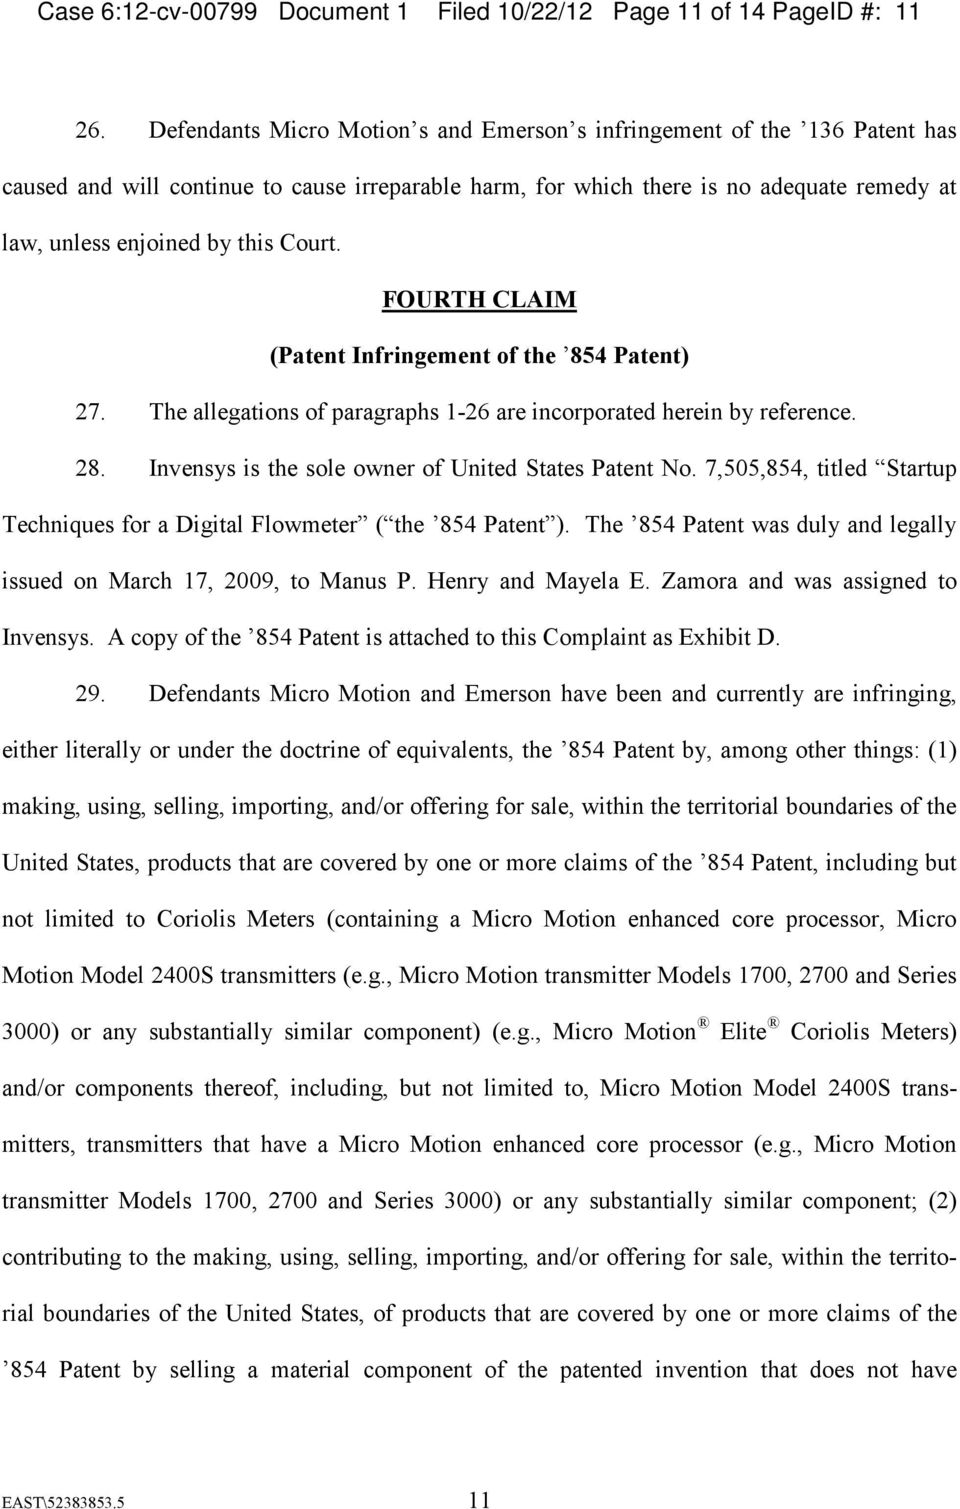 Court. FOURTH CLAIM (Patent Infringement of the 854 Patent) 27. The allegations of paragraphs 1-26 are incorporated herein by reference. 28. Invensys is the sole owner of United States Patent No.